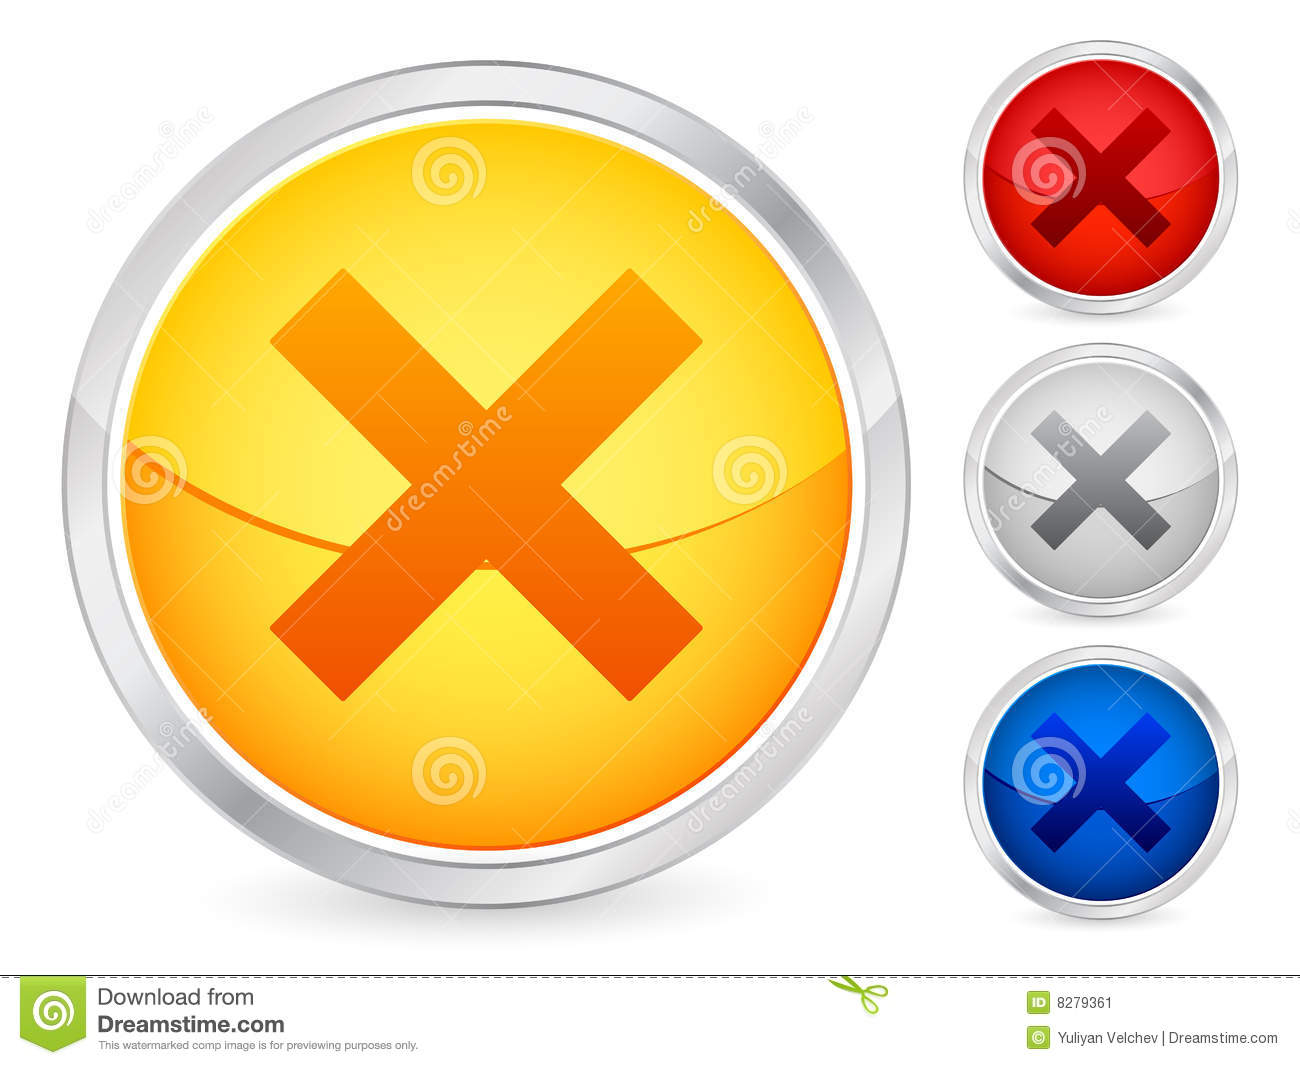 Cancel button stock vector. Image of cancel, blue ...